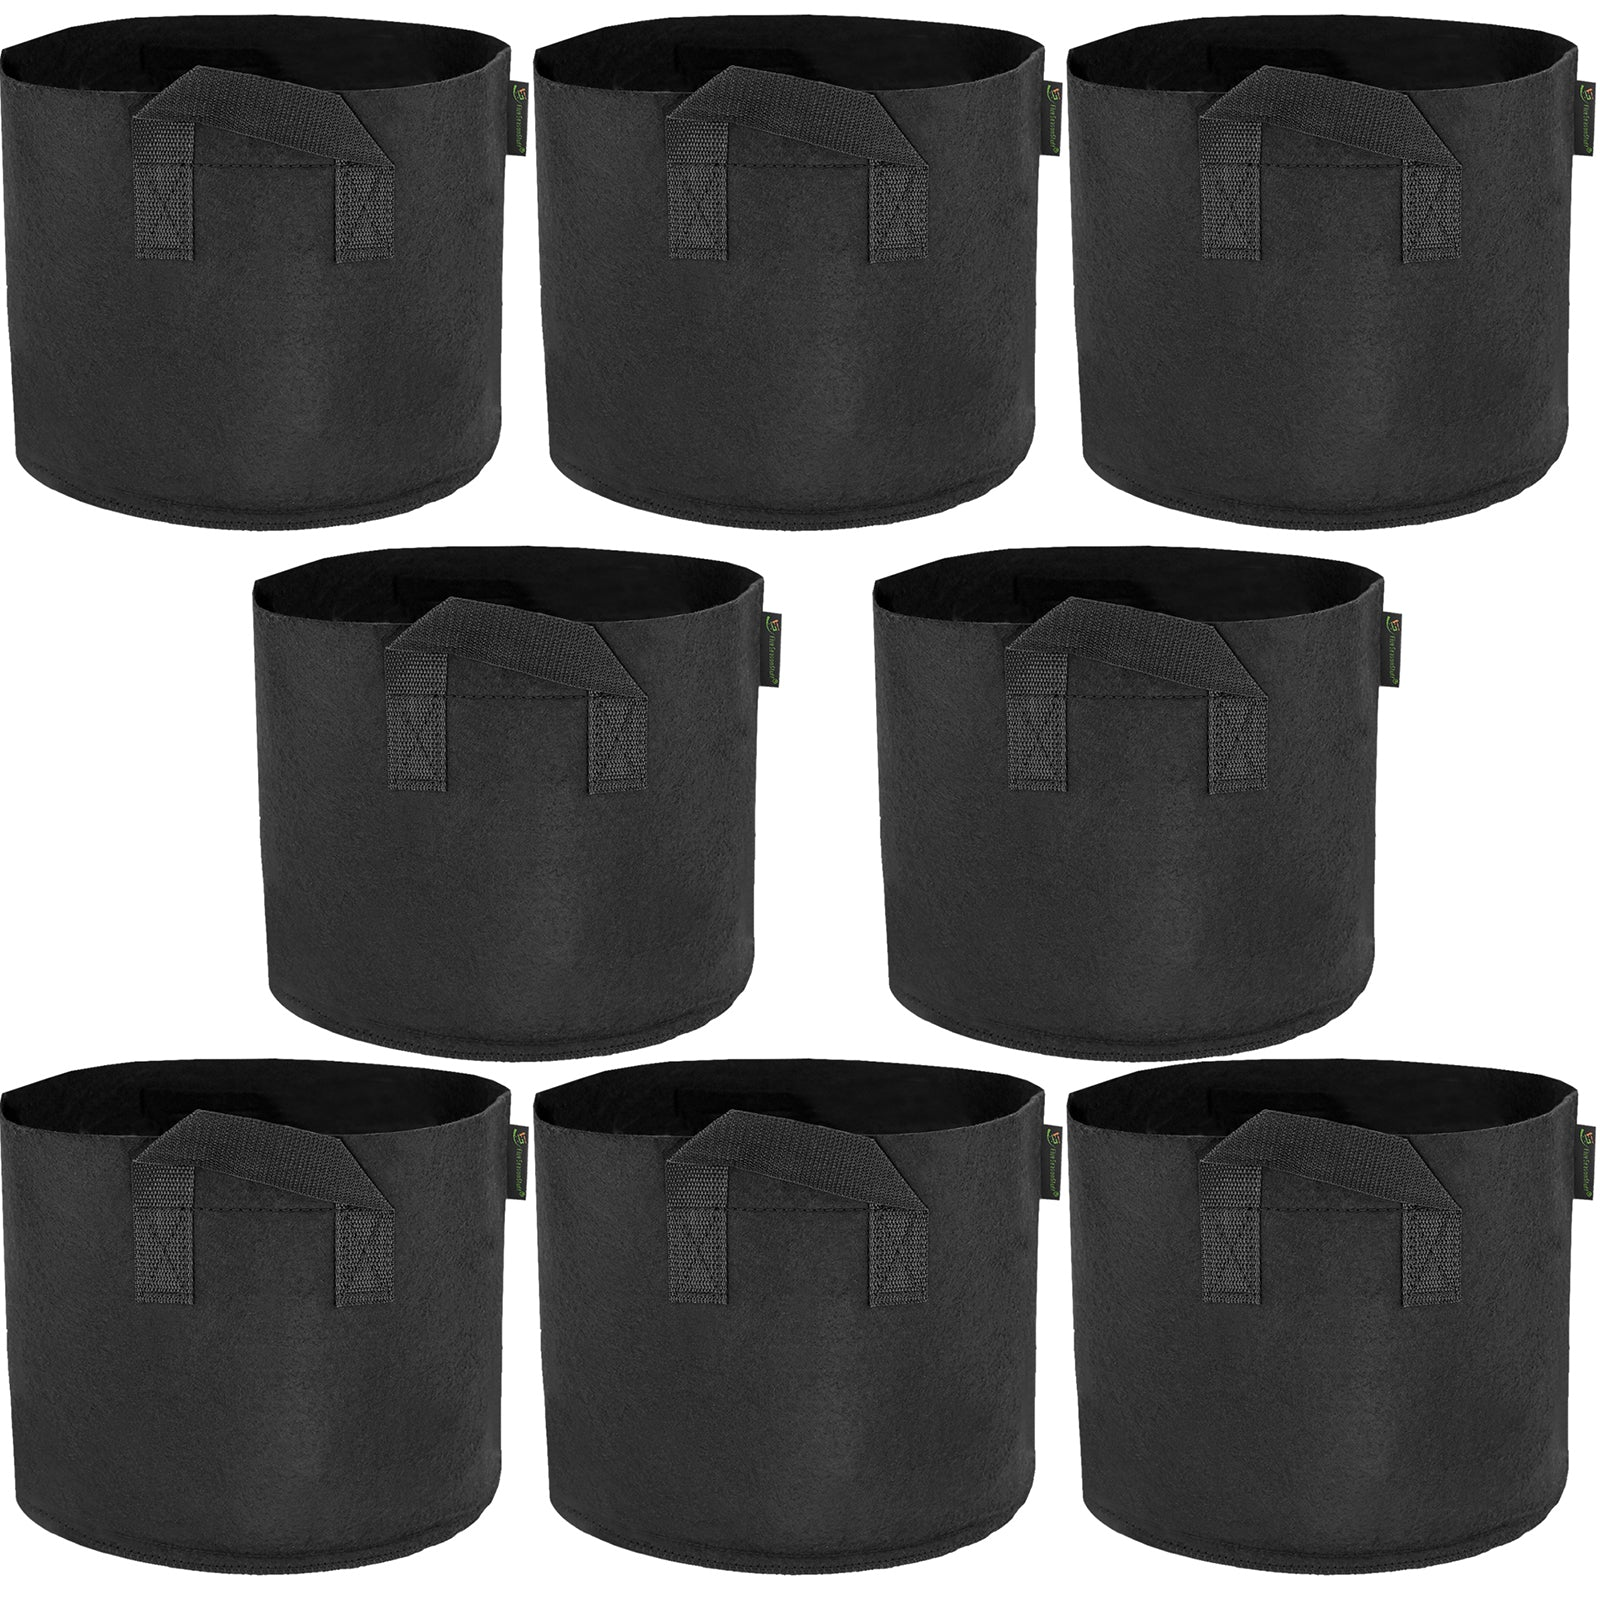 fiveseasonstuff-8-pack-5-gallons-grow-bags-black-breathable-fabric-pots-for-healthier-plants-flowers-heavy-duty-thick-container-with-tear-resistant-handles-aeration-planters-for-smart-gardening